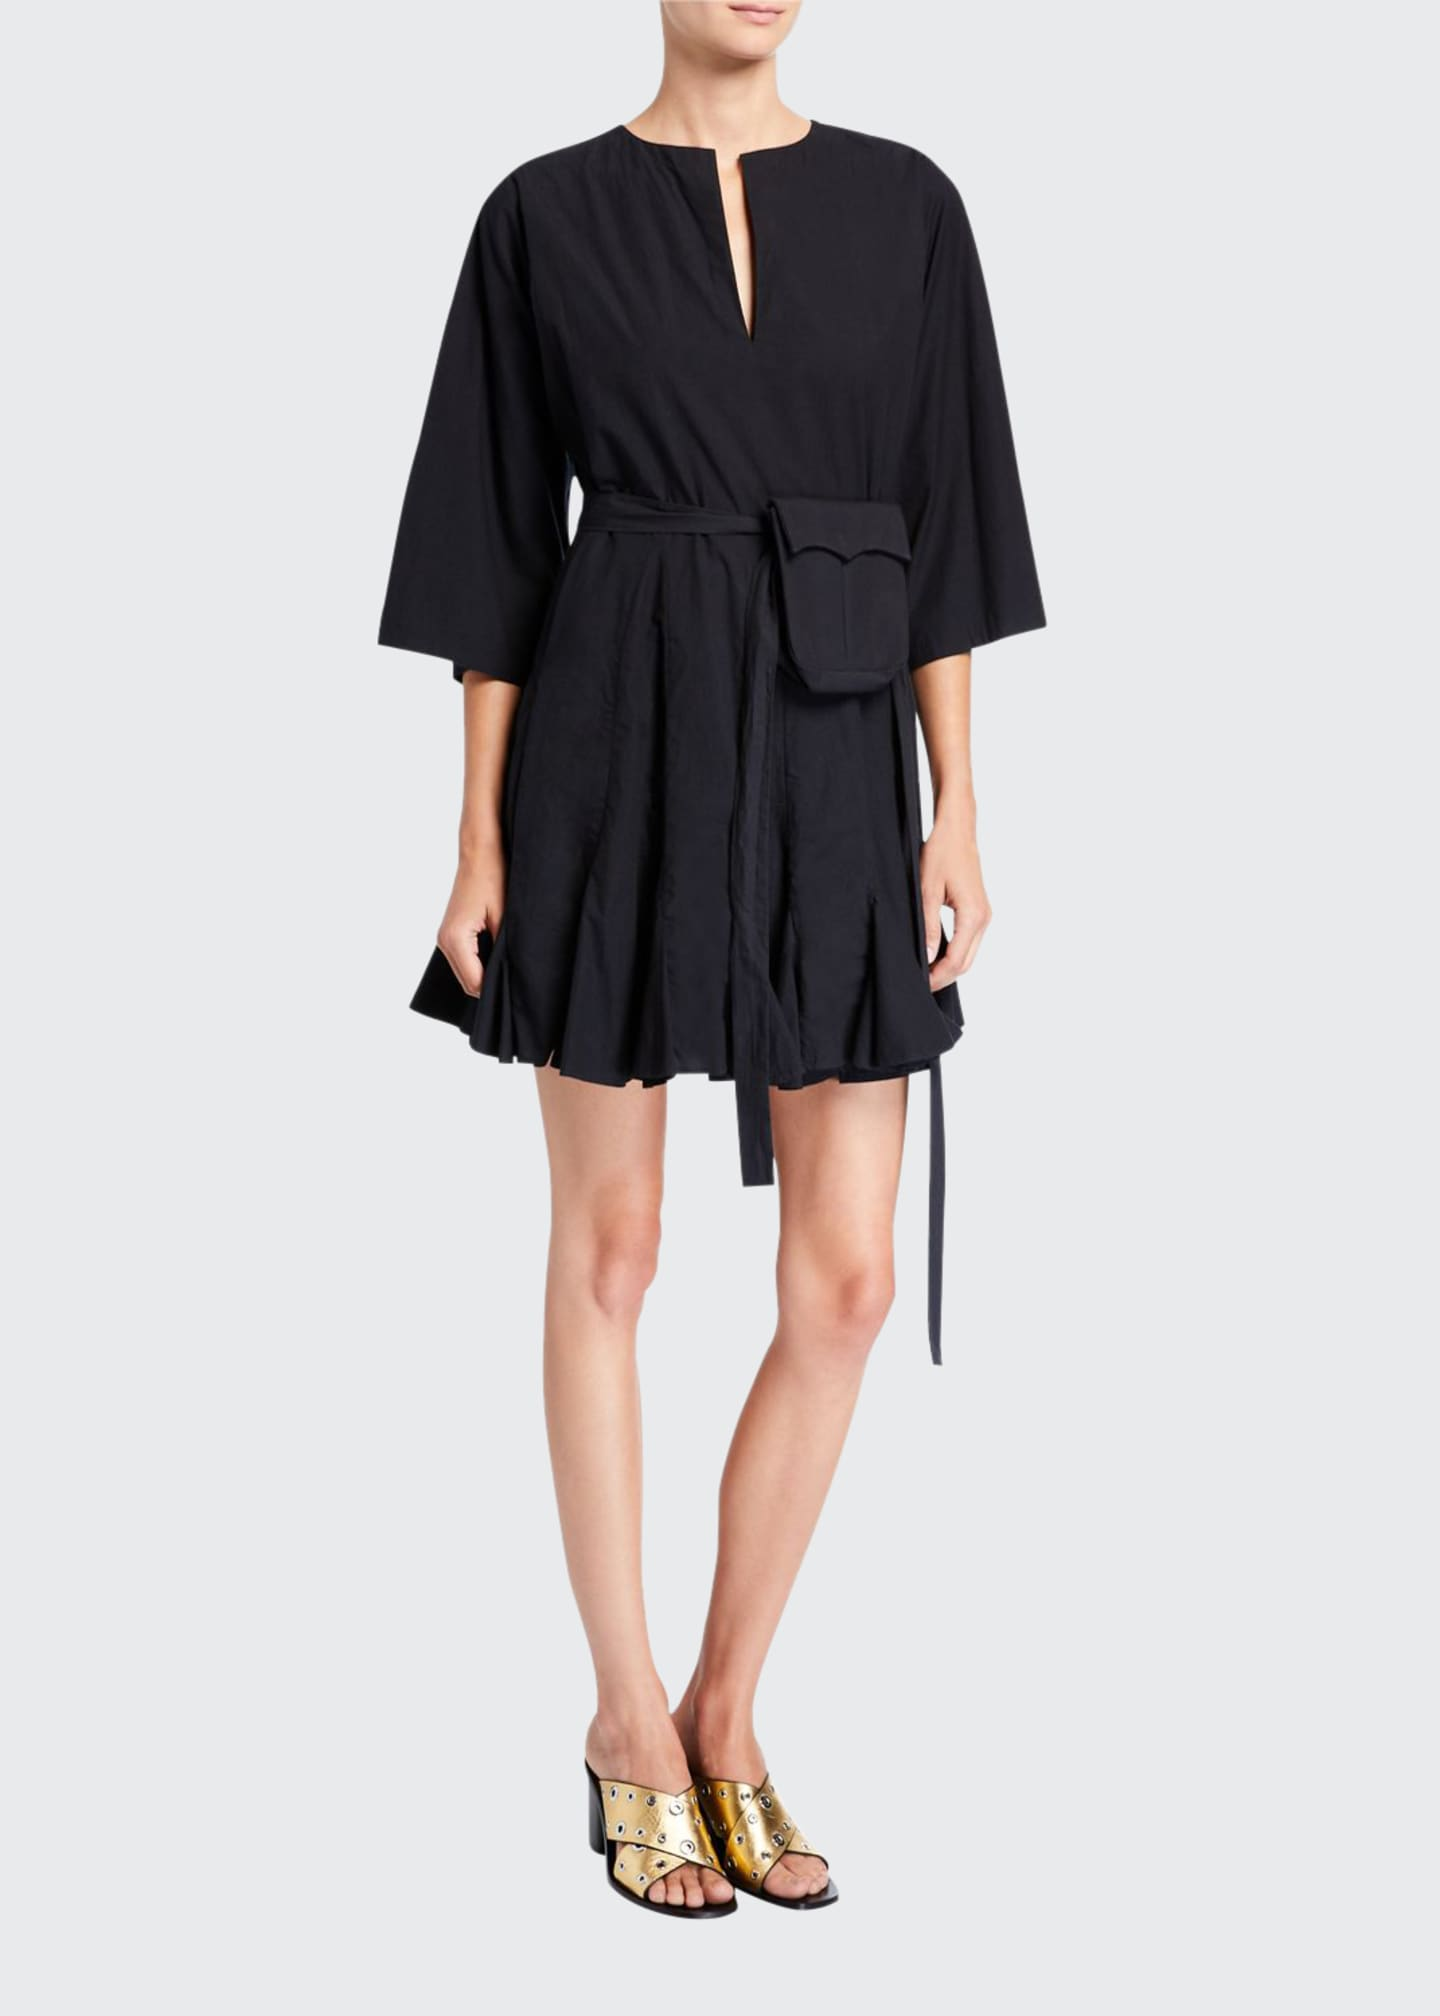 Rhode Ryan 3/4-Sleeve Short Dress with Belt Bag